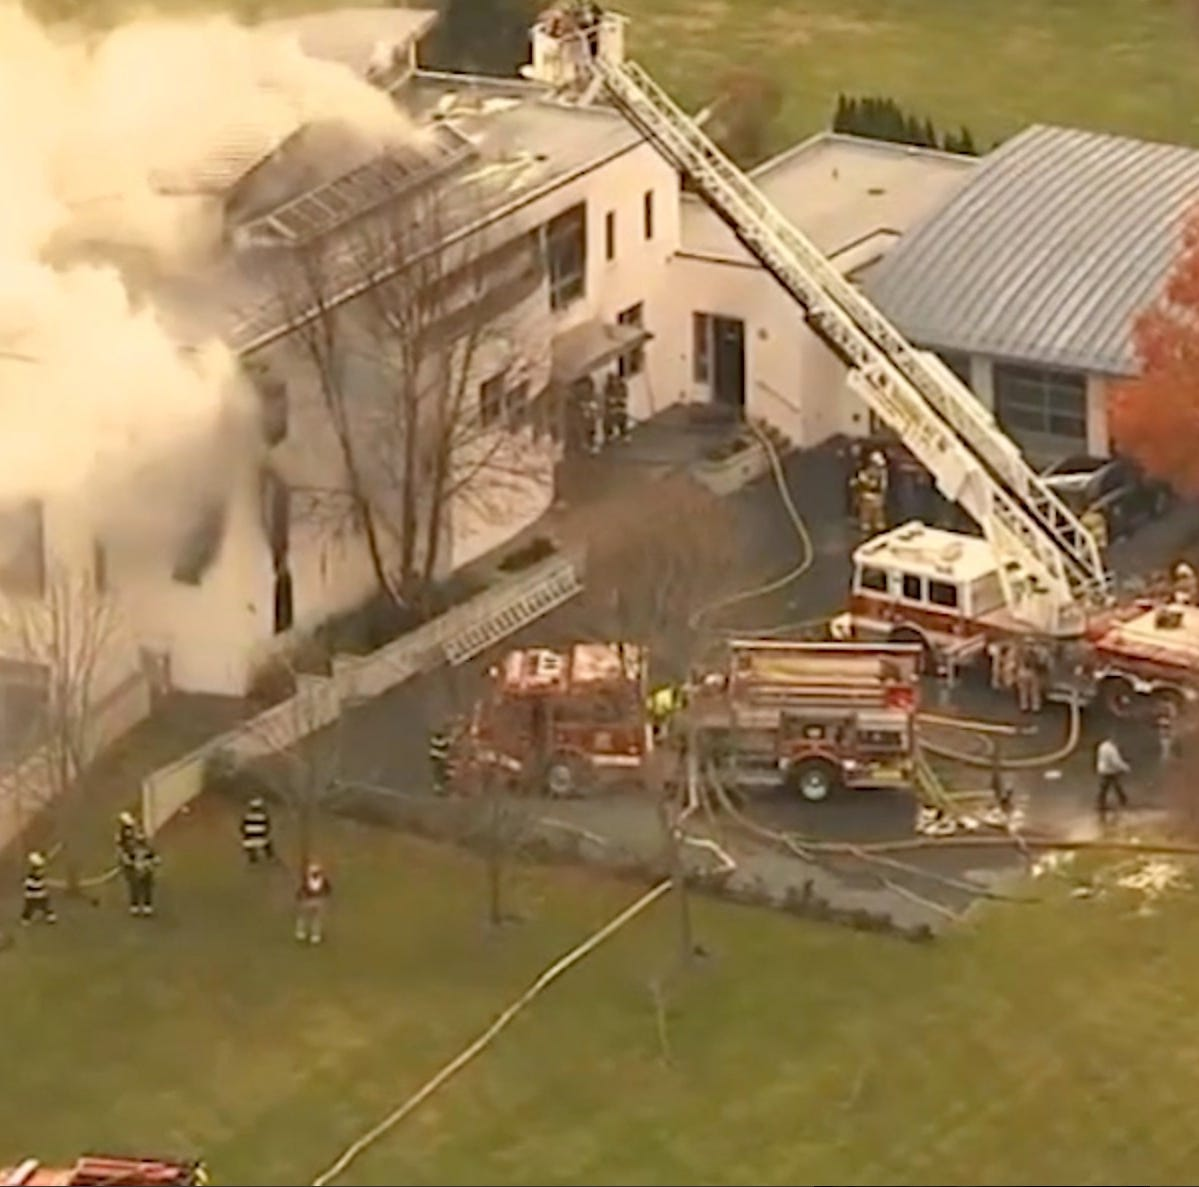 Colts Neck fire: What we know so far